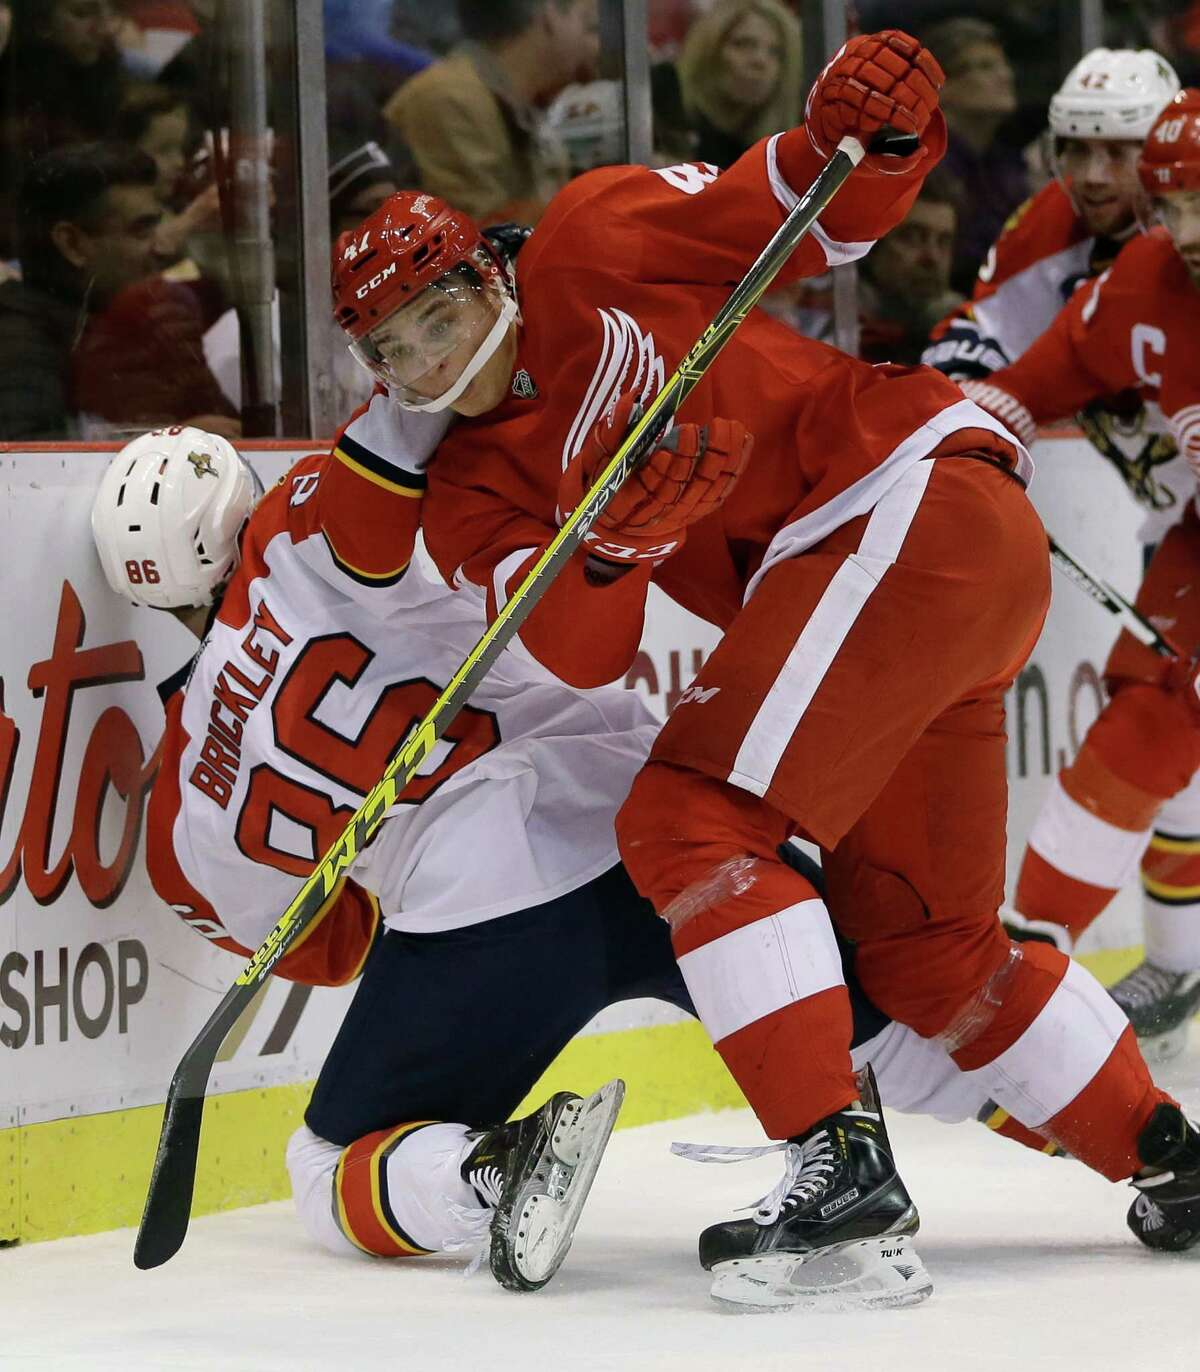 Detroit Red Wings defenseman Alexei Marchenko (47) of Russia checks Florida Panthers center Connor Brickley (86) during the first period of an NHL hockey game, Sunday, Nov. 29, 2015, in Detroit. (AP Photo/Carlos Osorio) ORG XMIT: MICO102